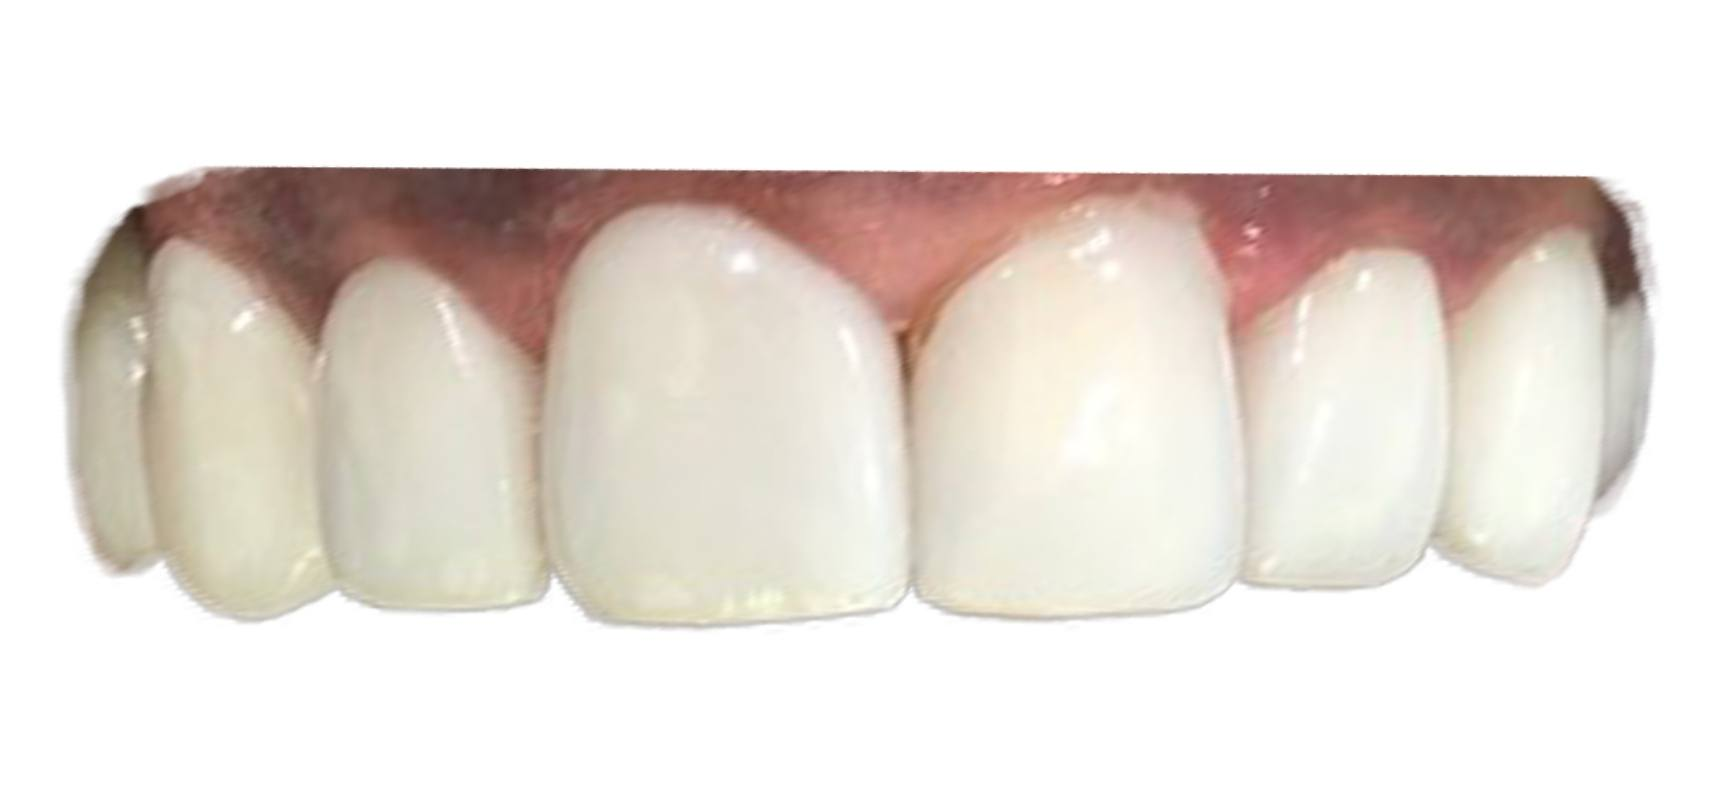 After-Veneer to improve shape and colors of upper front teeth done